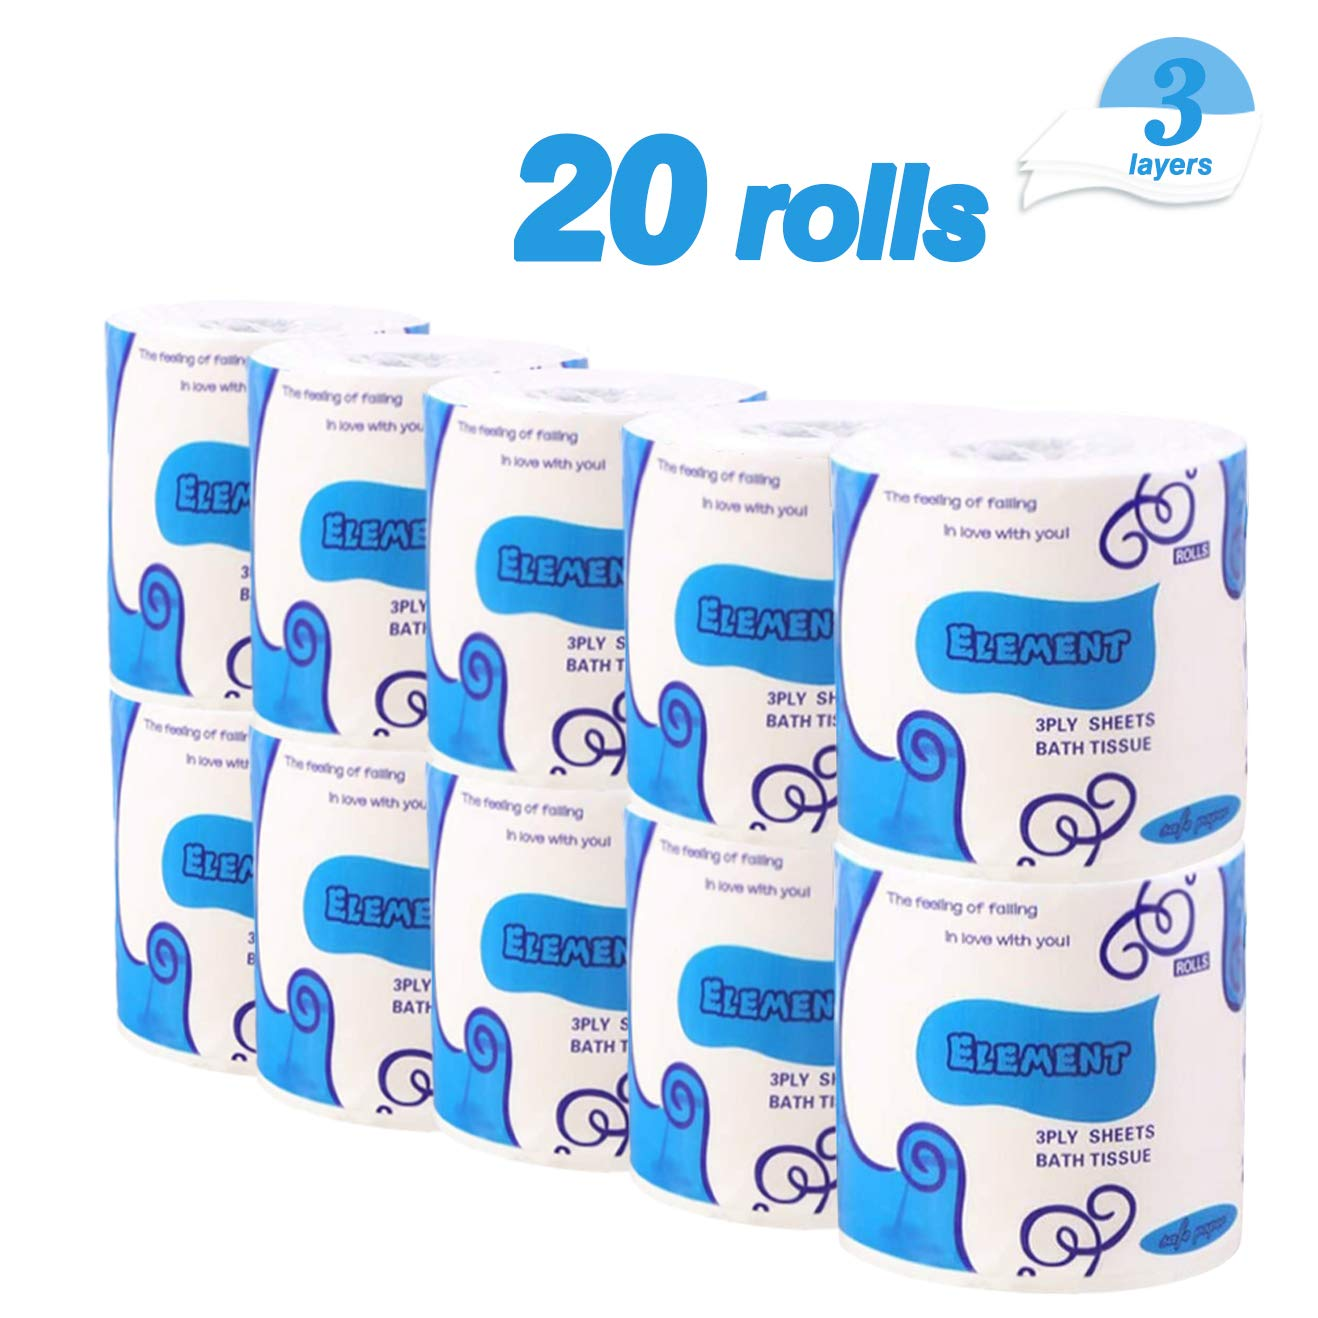 20 Rolls Toilet Paper 3-Ply Ultra Soft & Strong Paper Towels Highly Absorbent Flushable Household Towel Tissue for Home Kitchen Cafe Shop Hand Towels for Daily Use